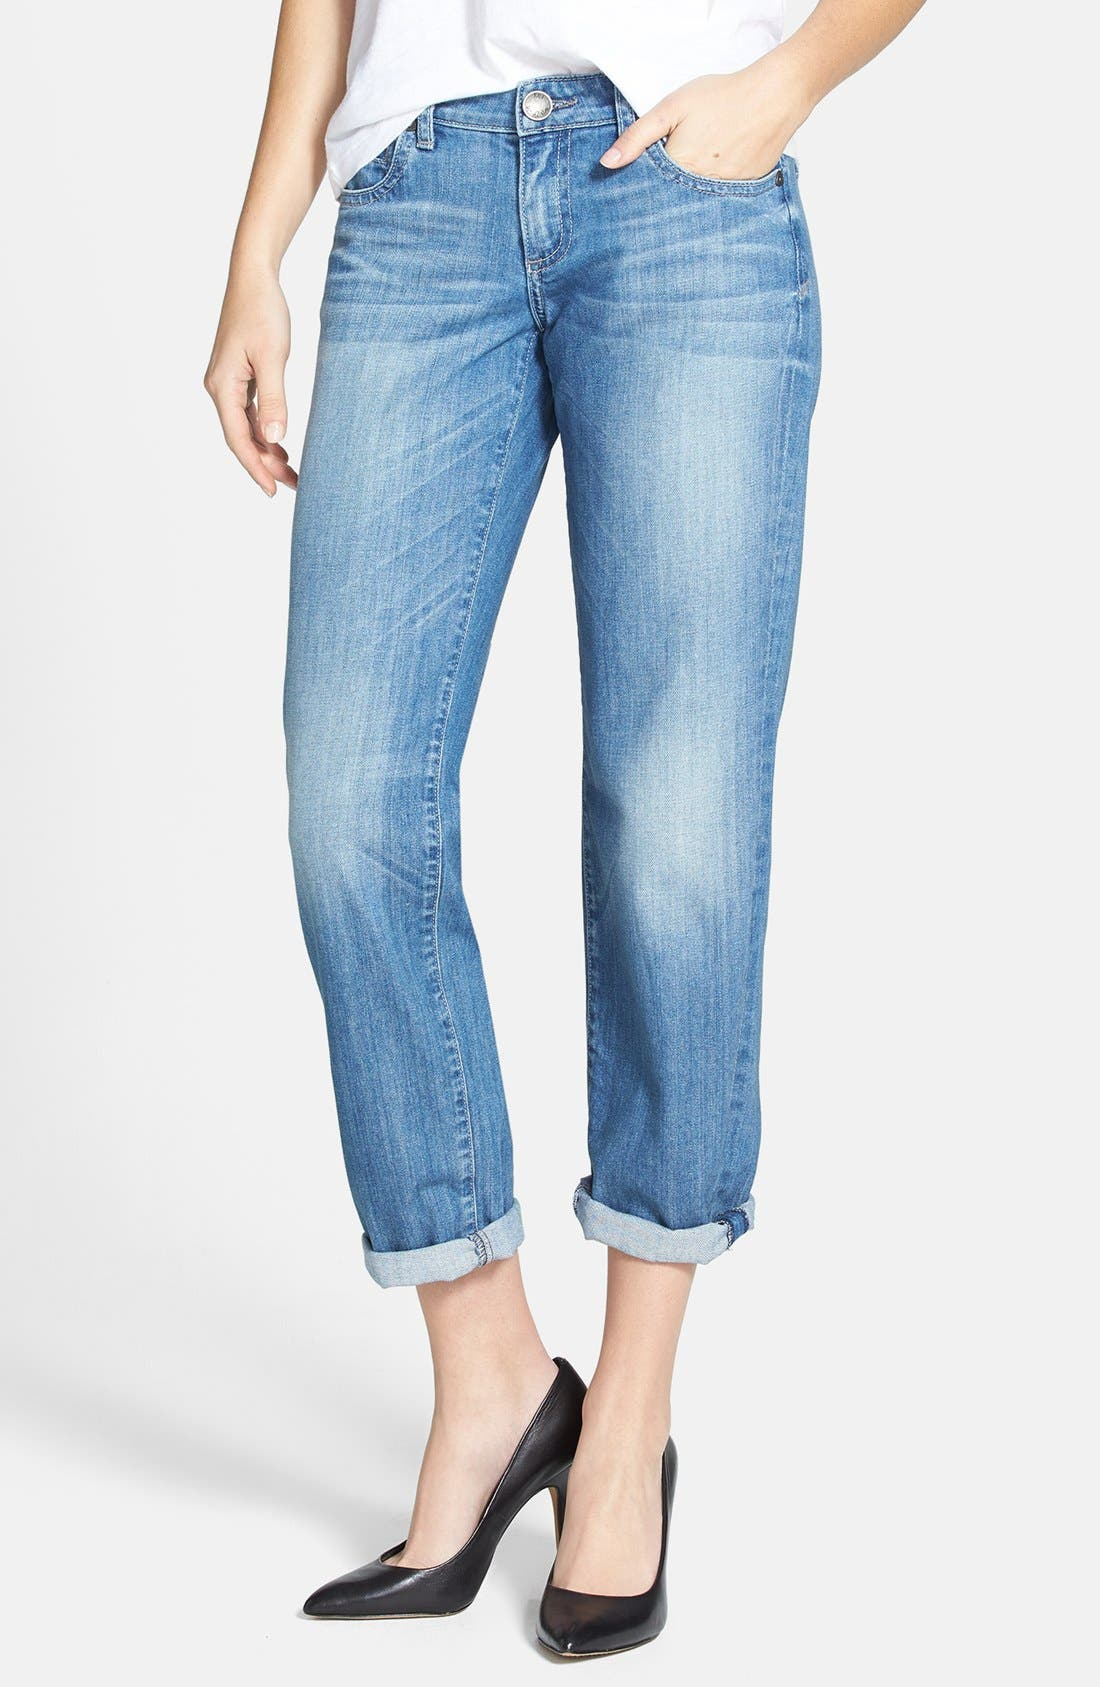 Main Image - KUT from the Kloth 'Catherine' Slim Boyfriend Jeans (Exceptional) (Regular & Petite)